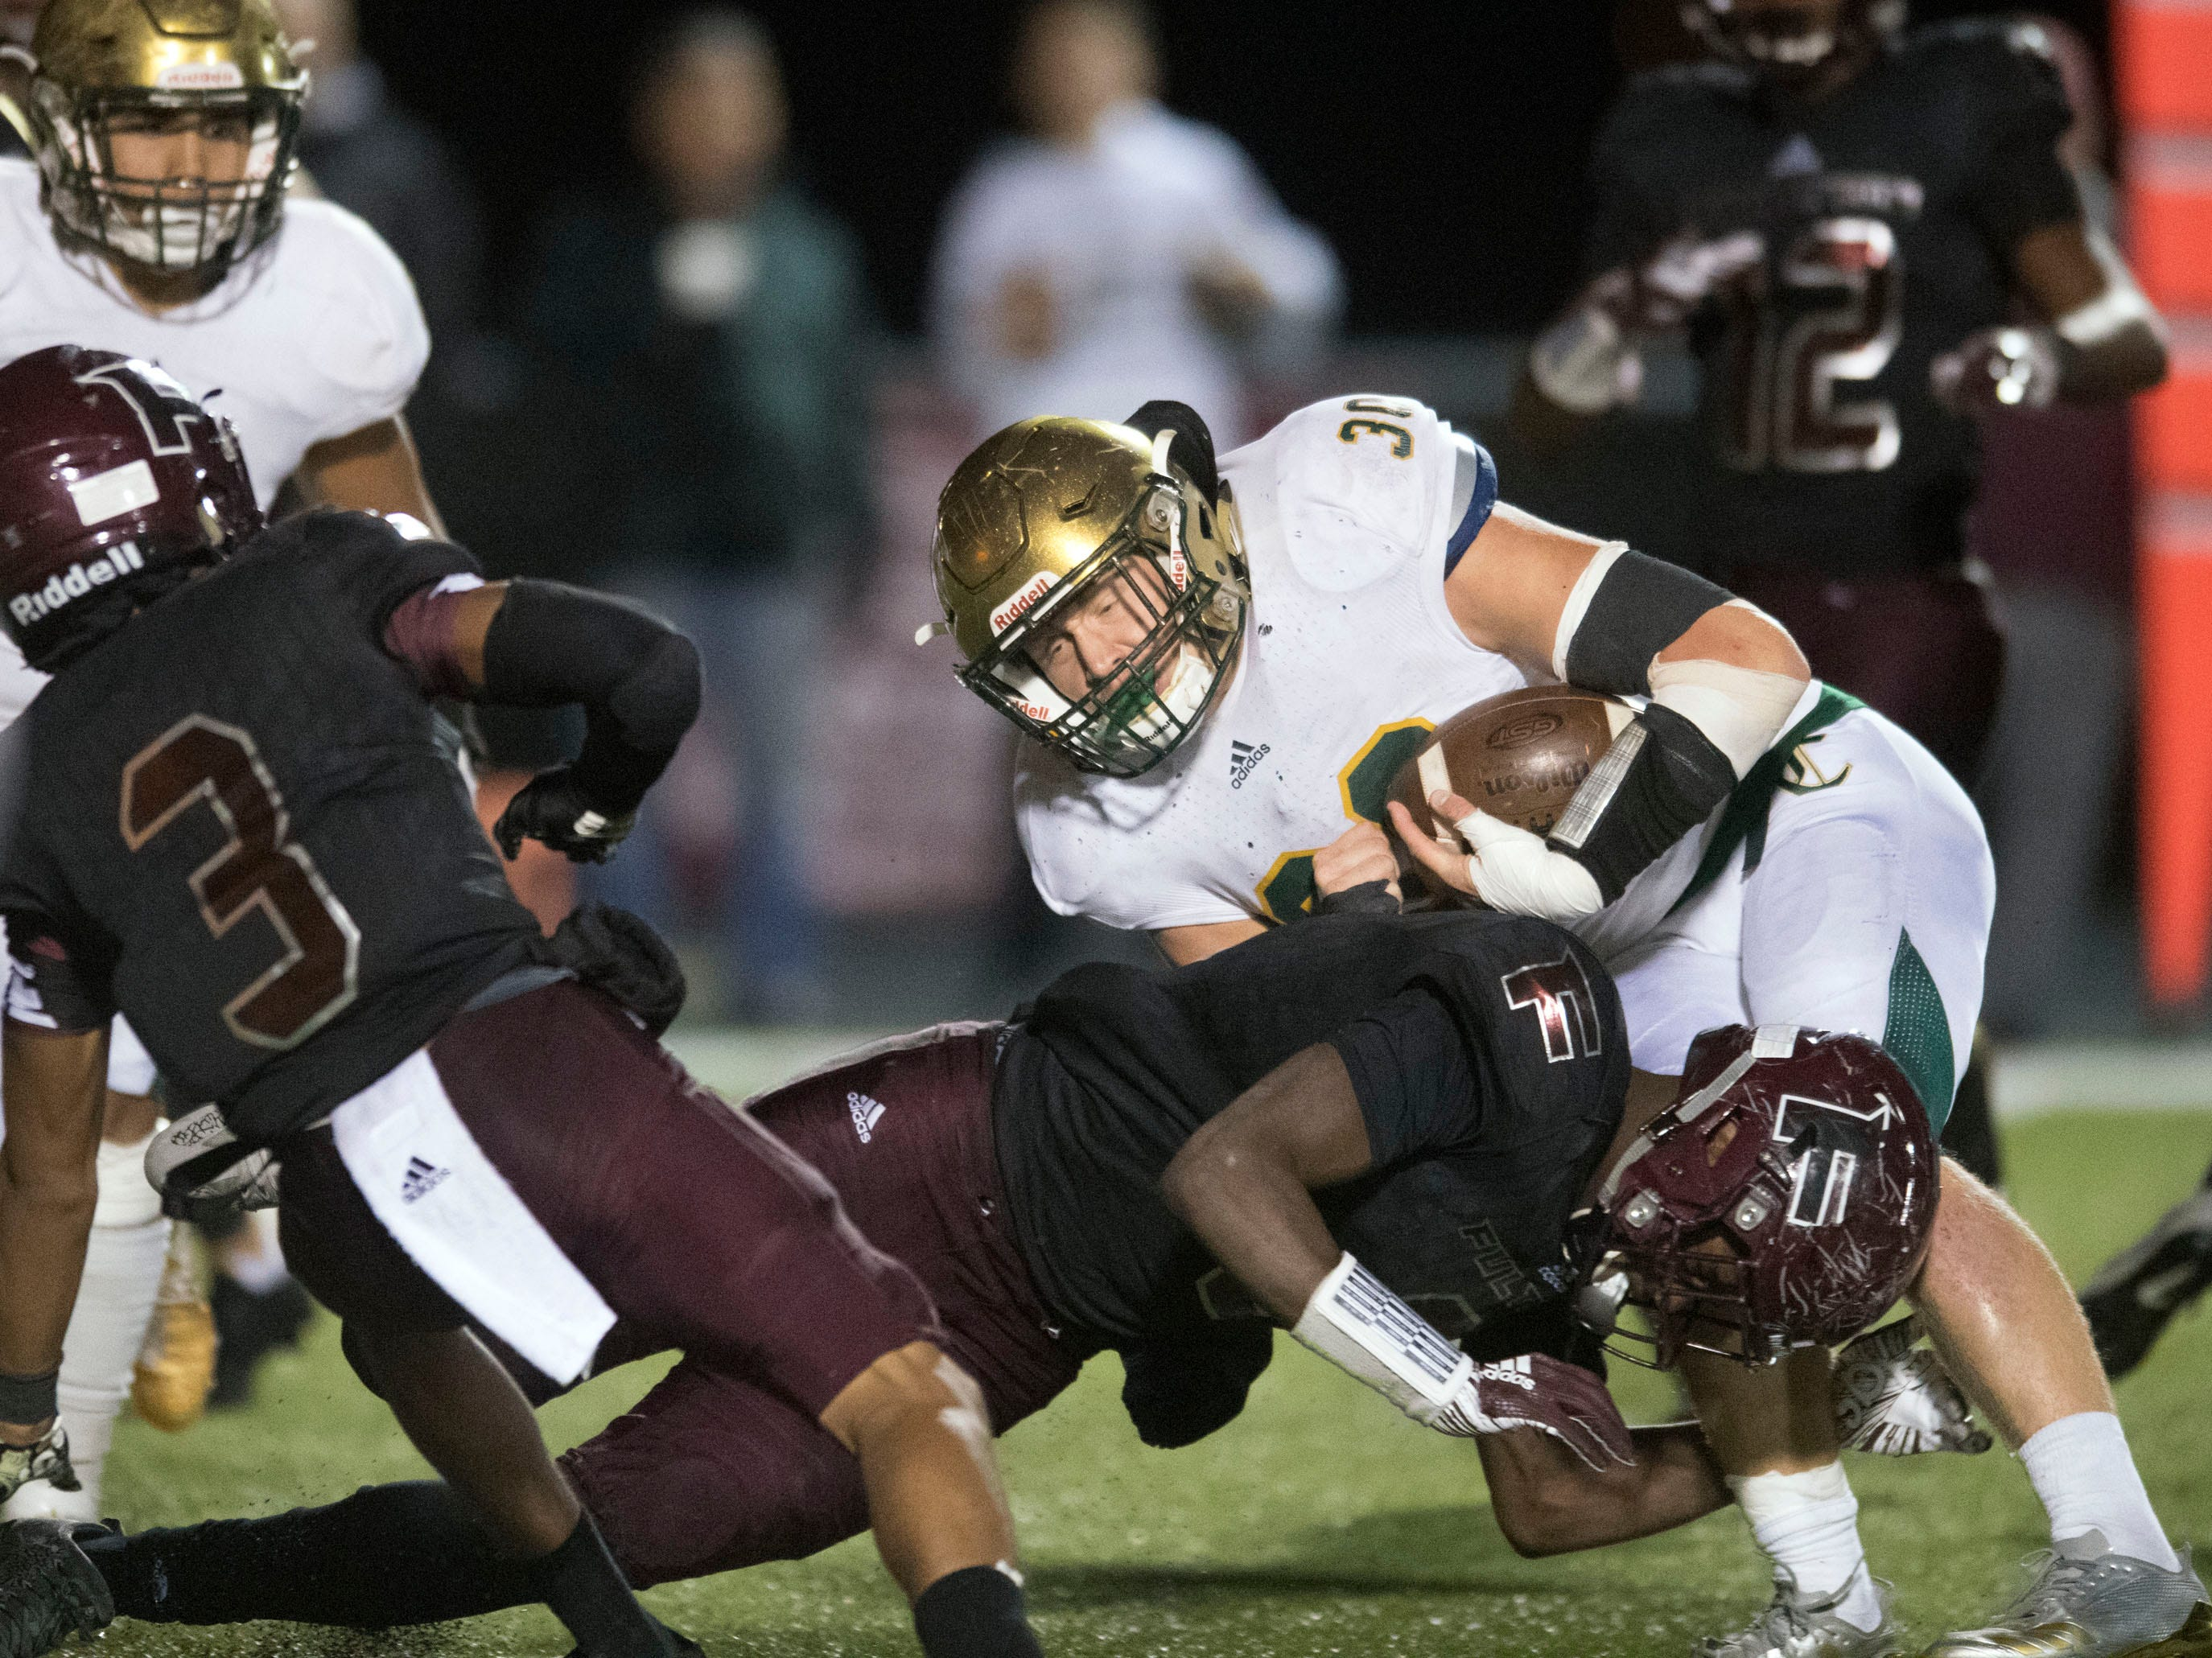 Knoxville Catholic's Cody Duncan (30) on a run play against Fulton. Knoxville Catholic beat Fulton, 28-25 in the second round of the Class 5A playoffs on Friday, November 9, 2018.